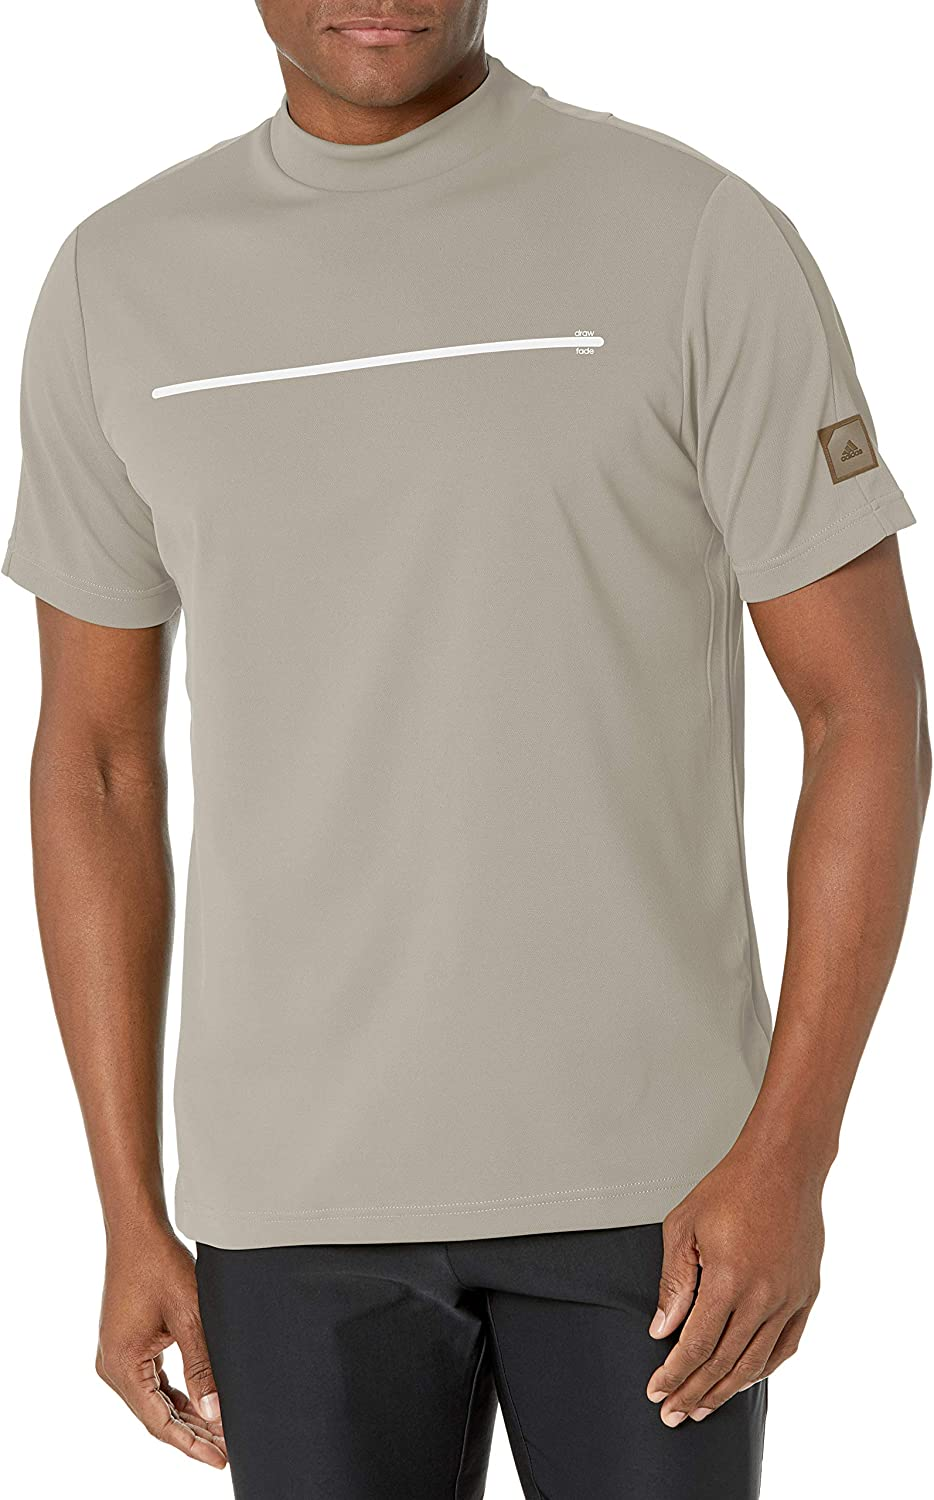 Max 57% OFF adidas Men's Adicross excellence T-Shirt Recycled Polyester